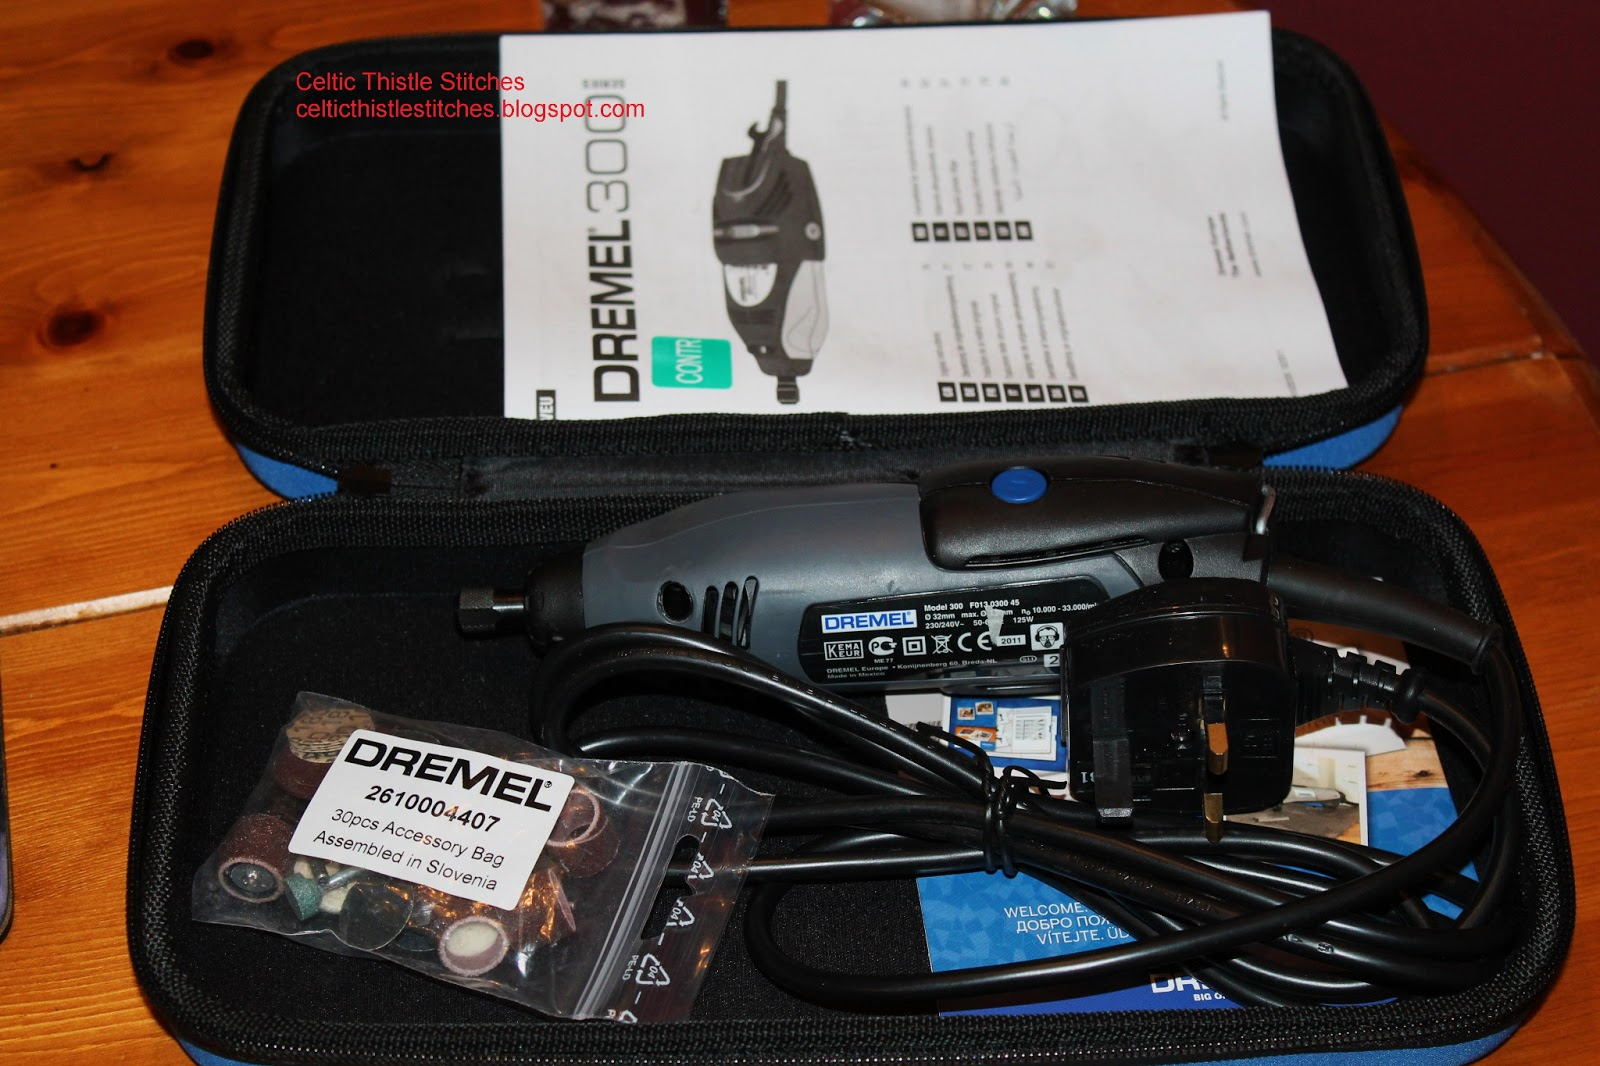 Dremel 300 Drill and accessories in carry case